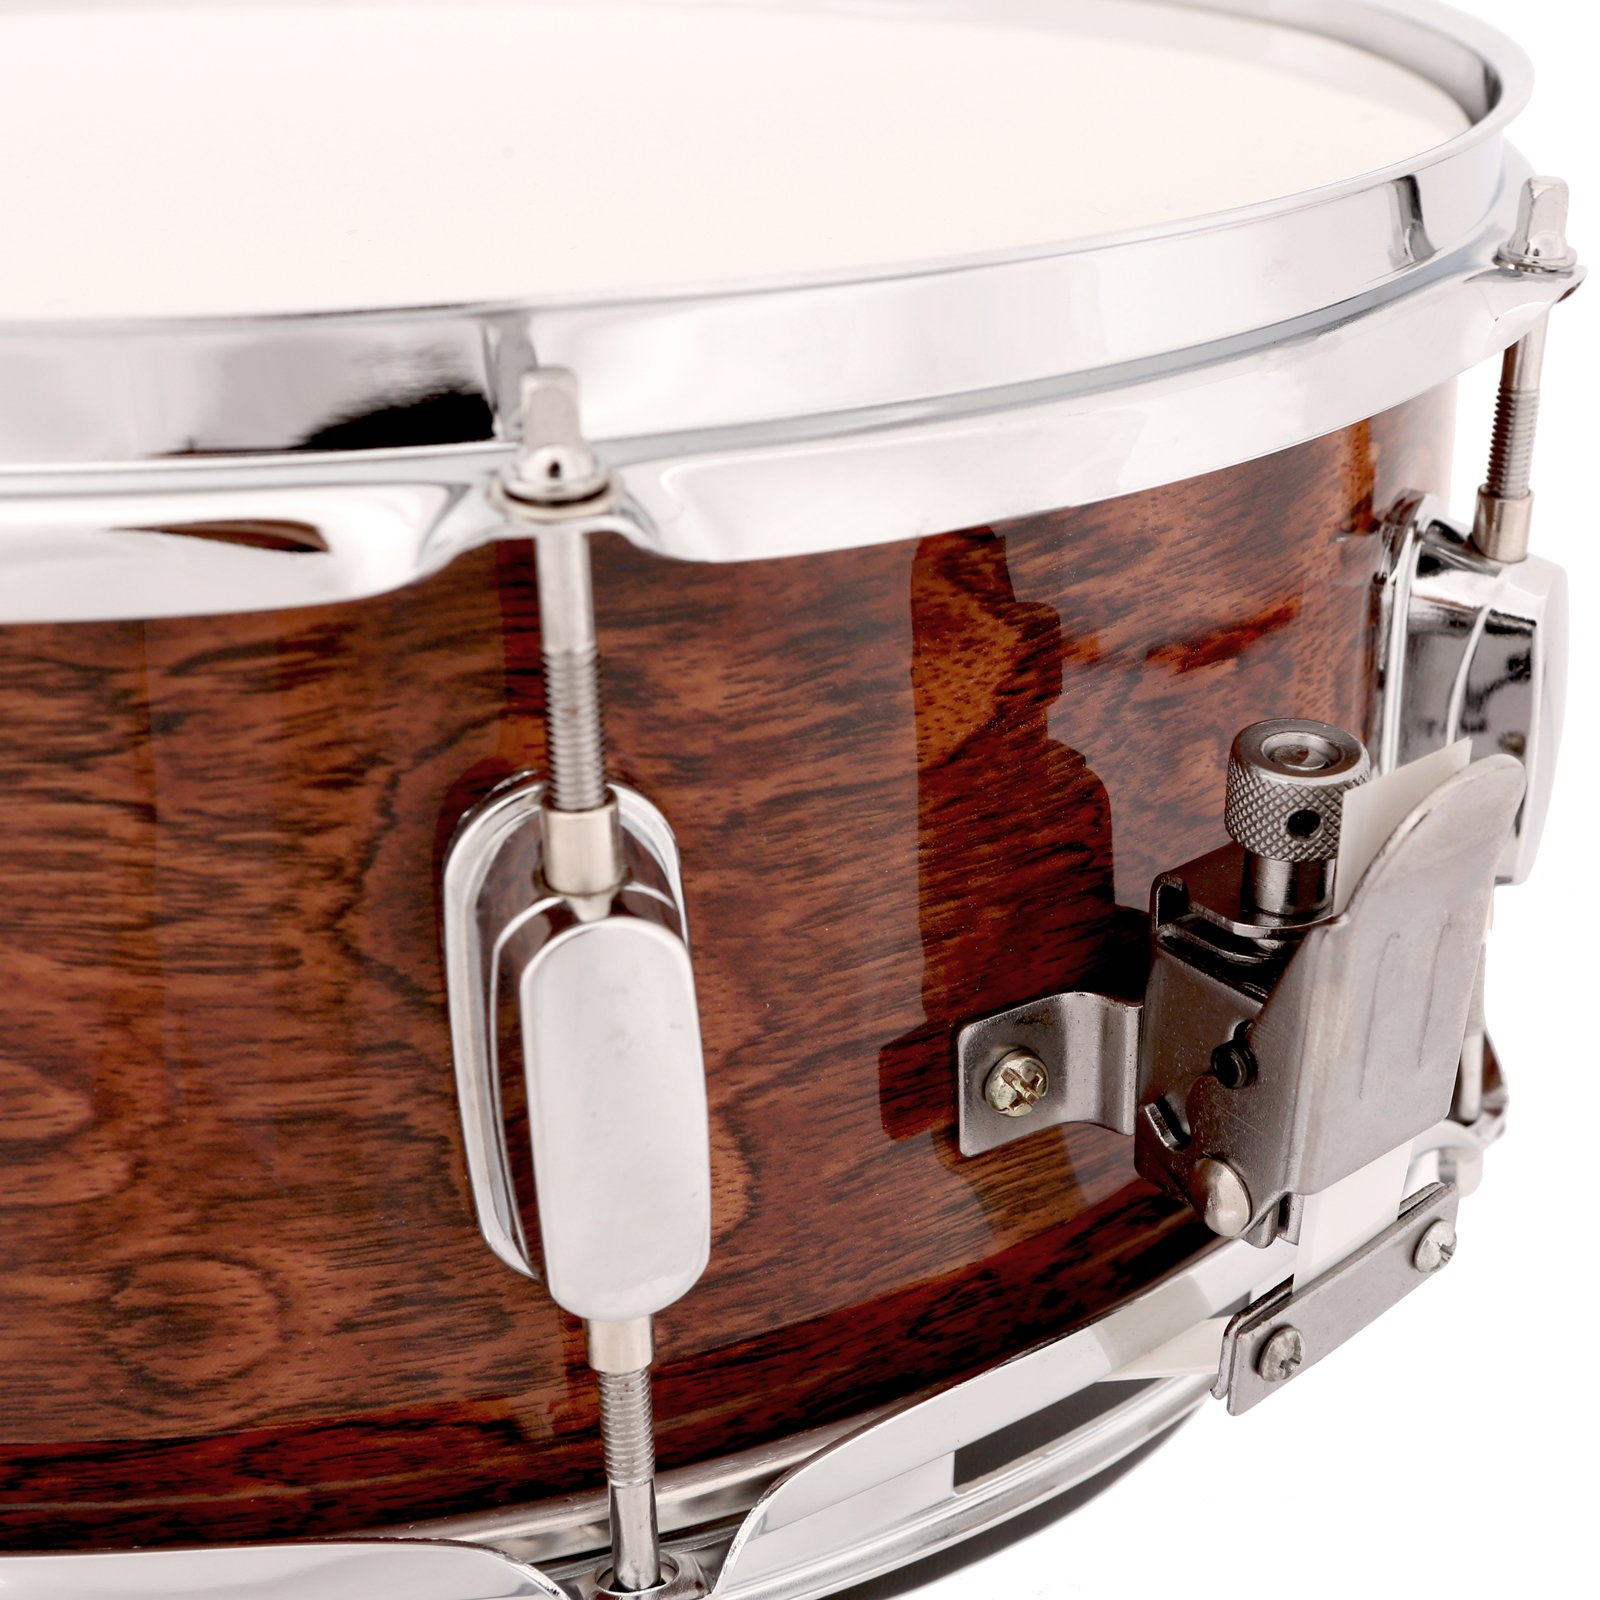 LAGRIMA Student Beginner Snare Drum W/Drum Key, Drumsticks and Strap|14x5.5 inch|Real Wood Shell|8 Metal Tuning Lugs by LAGRIMA (Image #7)